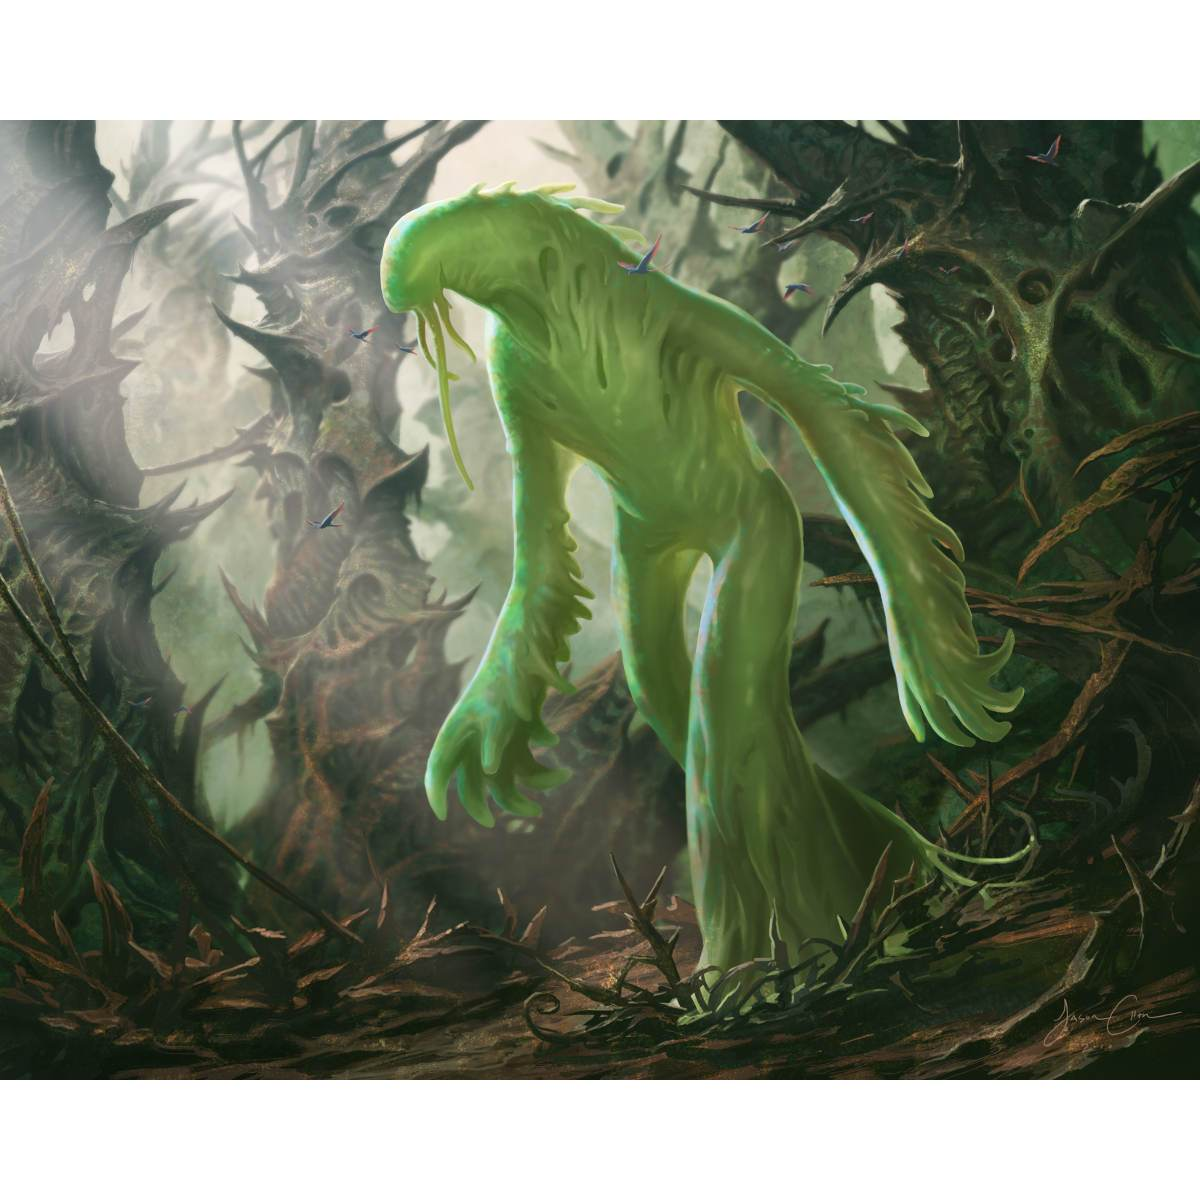 Liege of the Tangle Print - Print - Original Magic Art - Accessories for Magic the Gathering and other card games